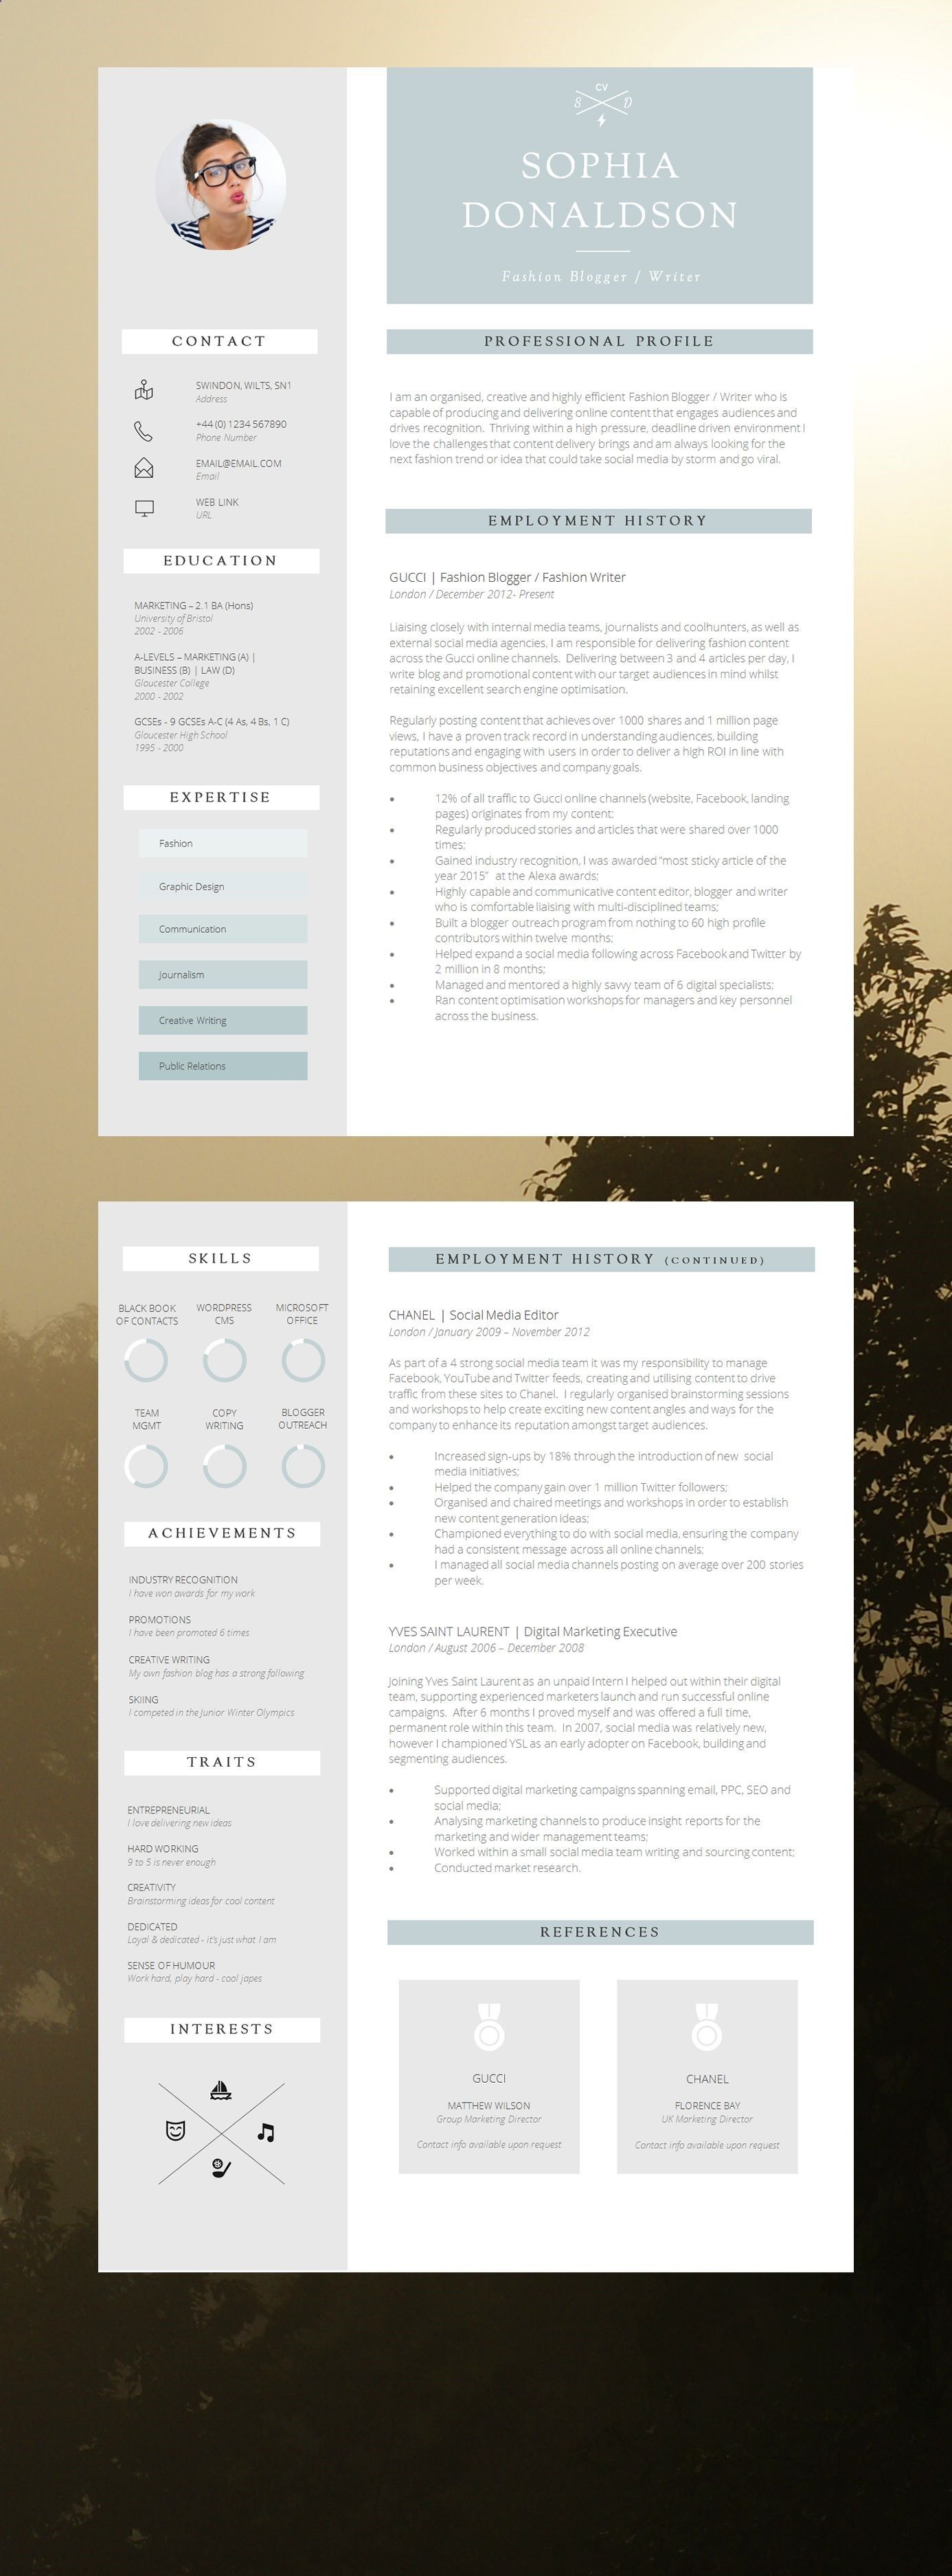 CV Template Modern CV Design Don T Underestimate The Power Of A